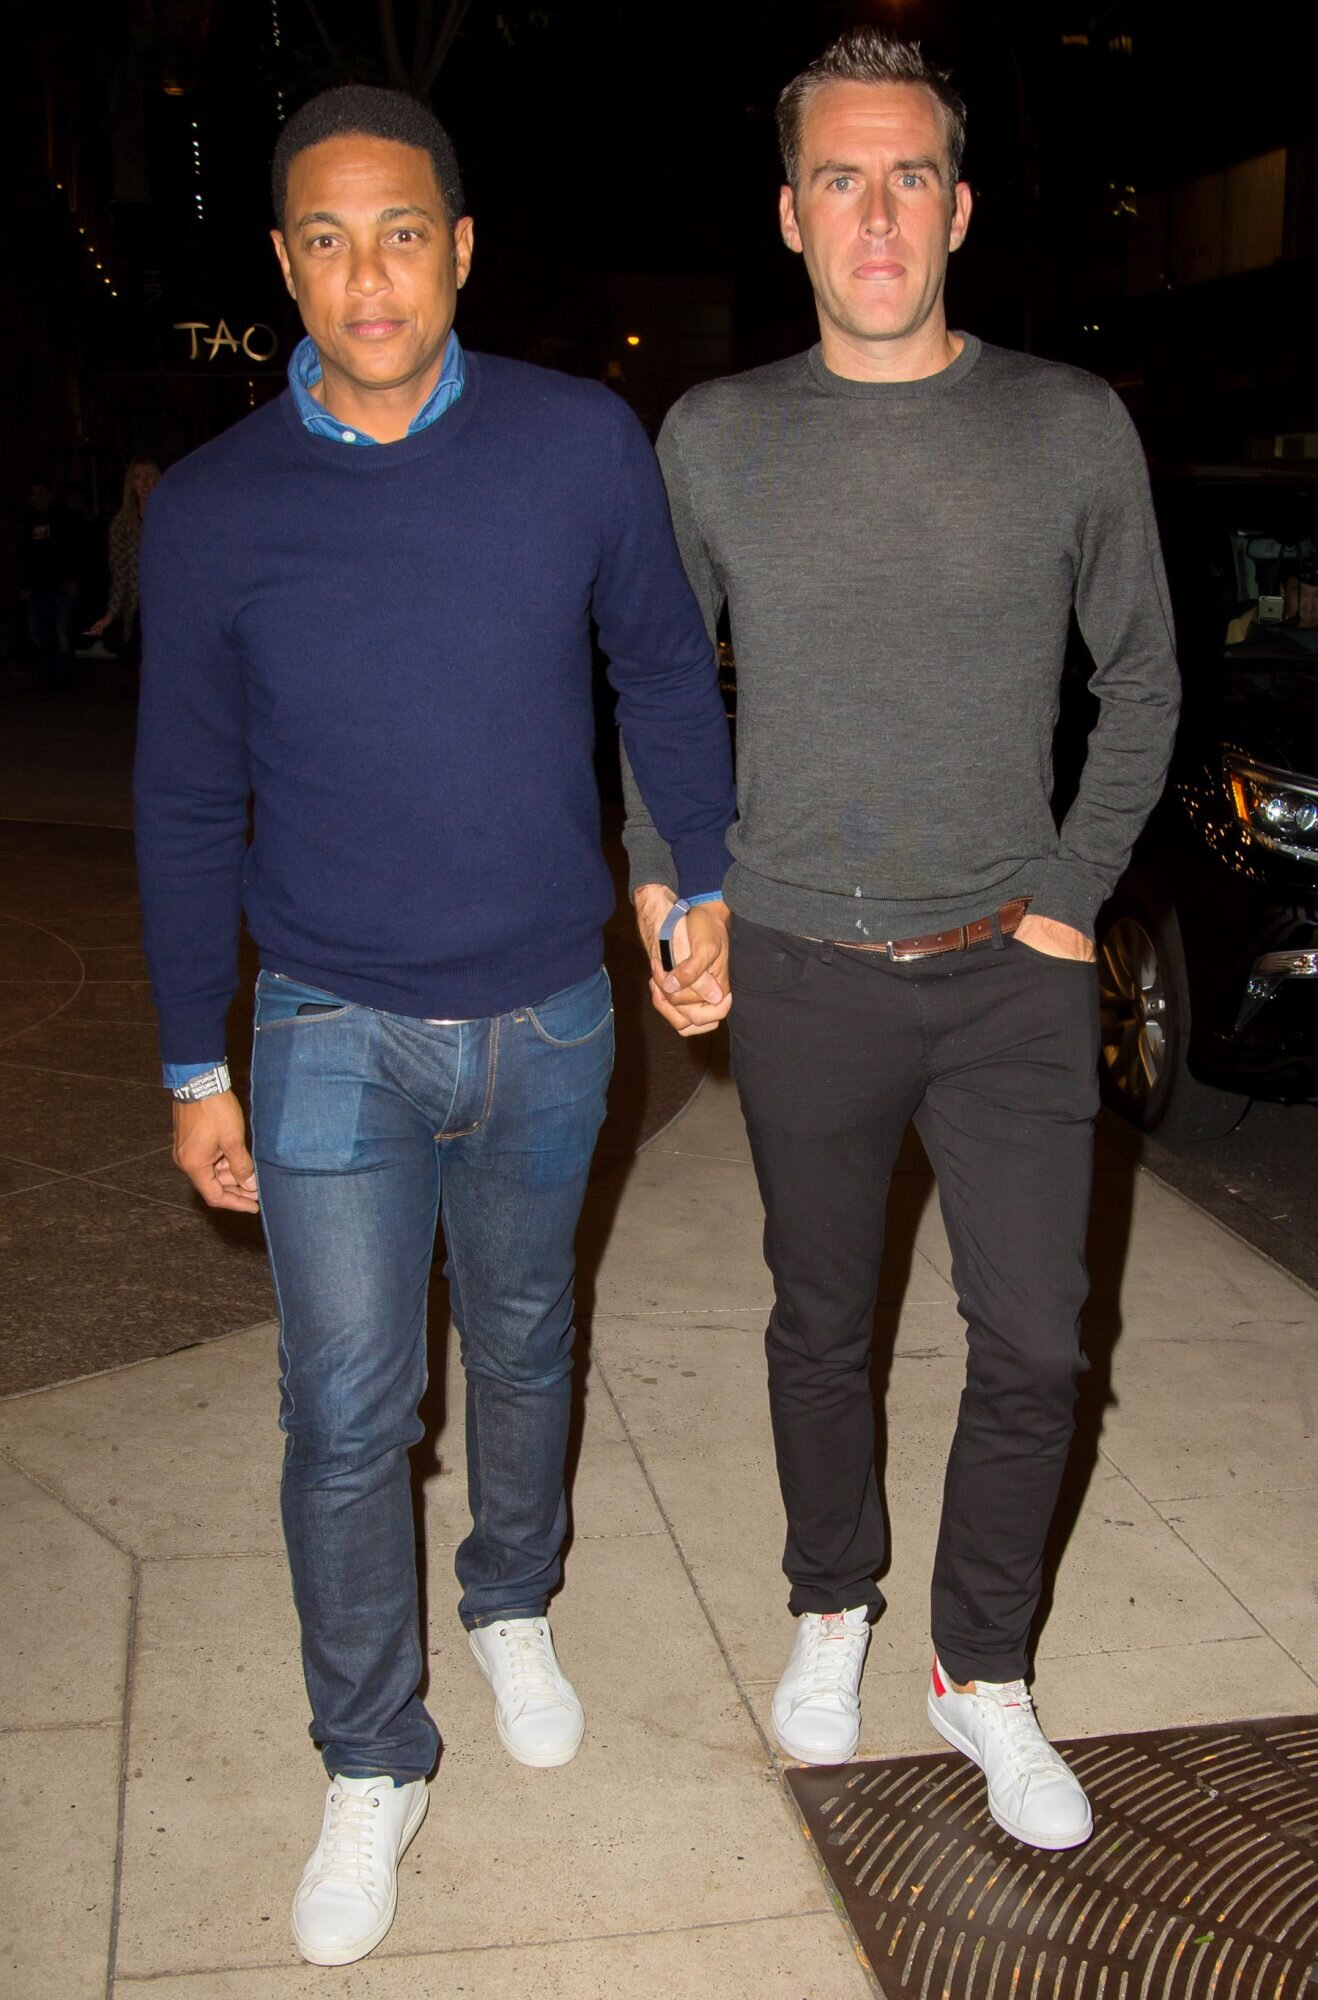 Don Lemon Holds Hands With Boyfriend at SNL Afterparty | PEOPLE.com